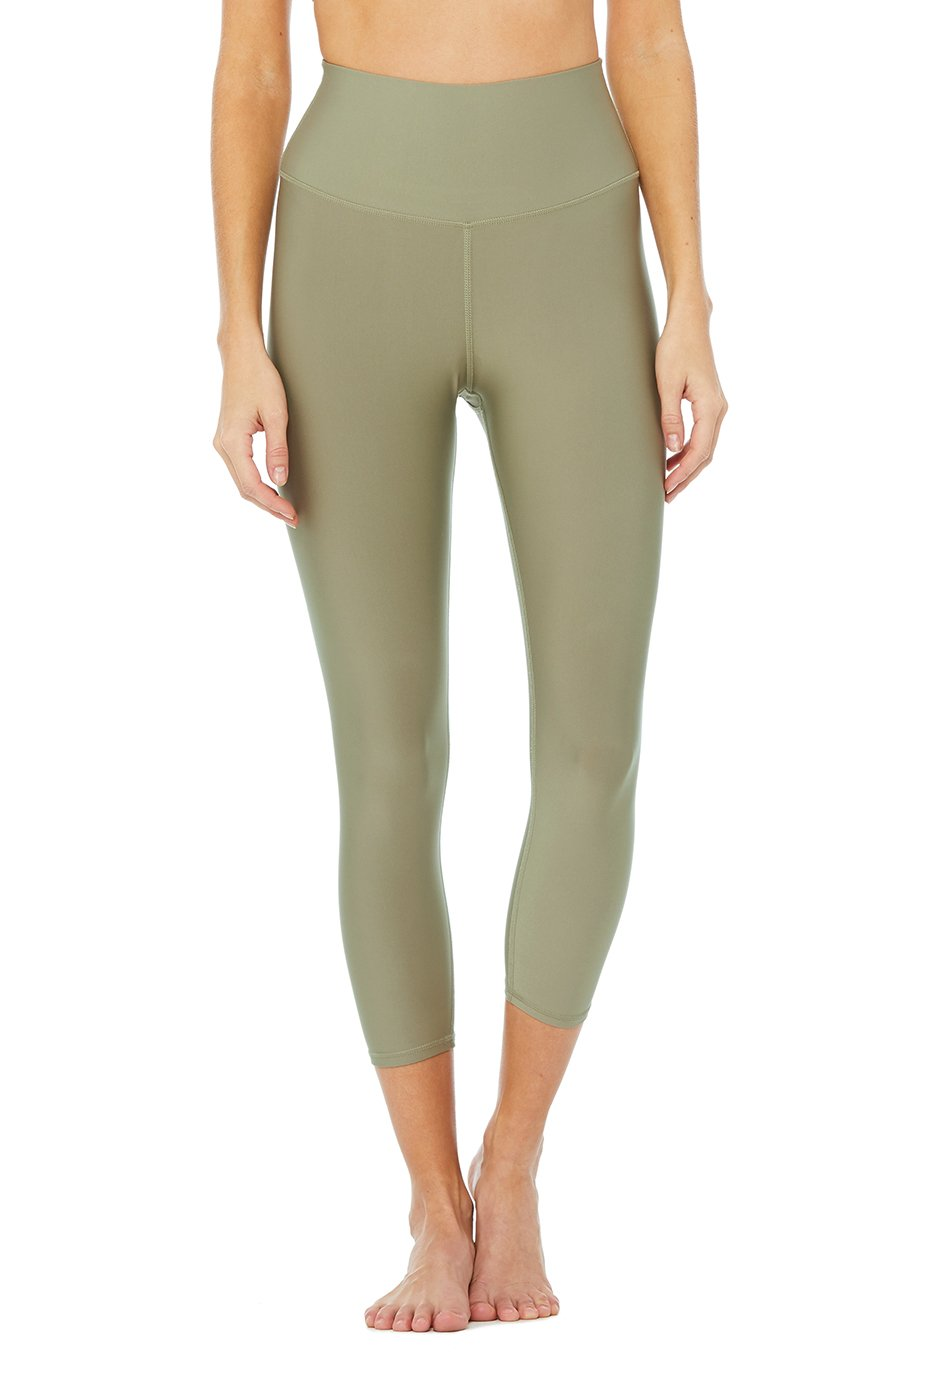 Alo Yoga SMALL High-Waist Airlift Capri - Olive